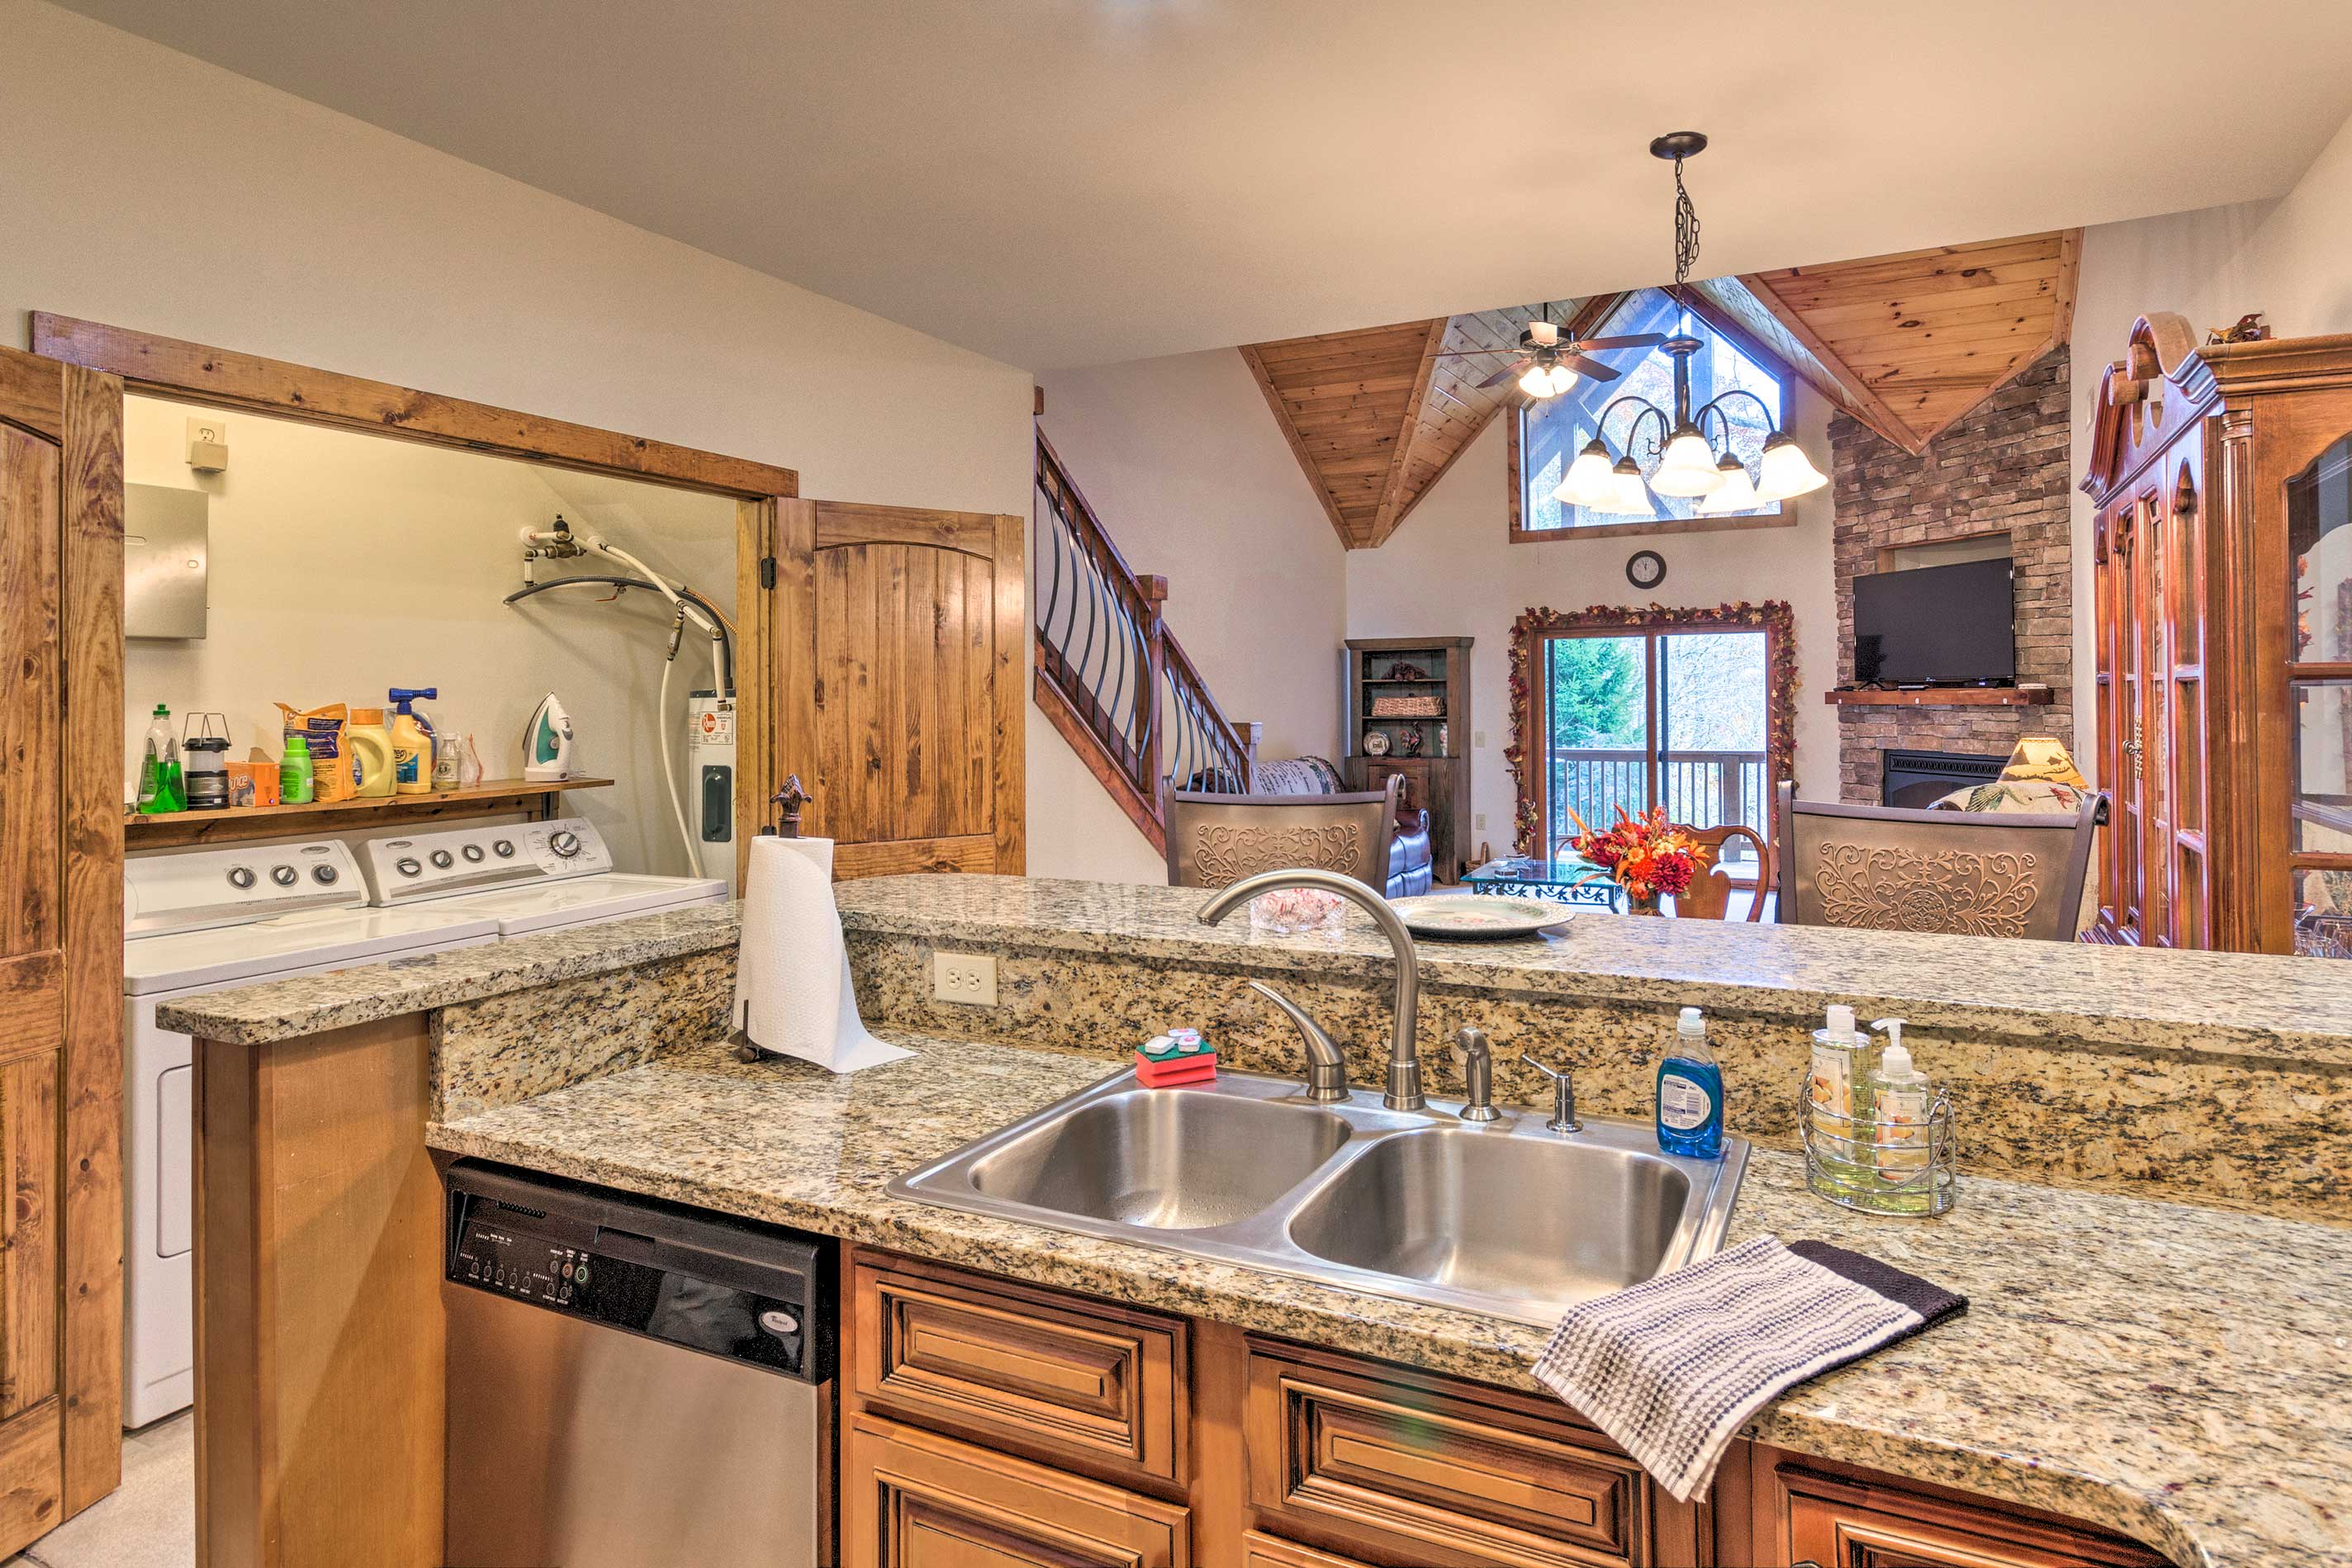 Clean up is effortless with double sinks and a dishwasher.